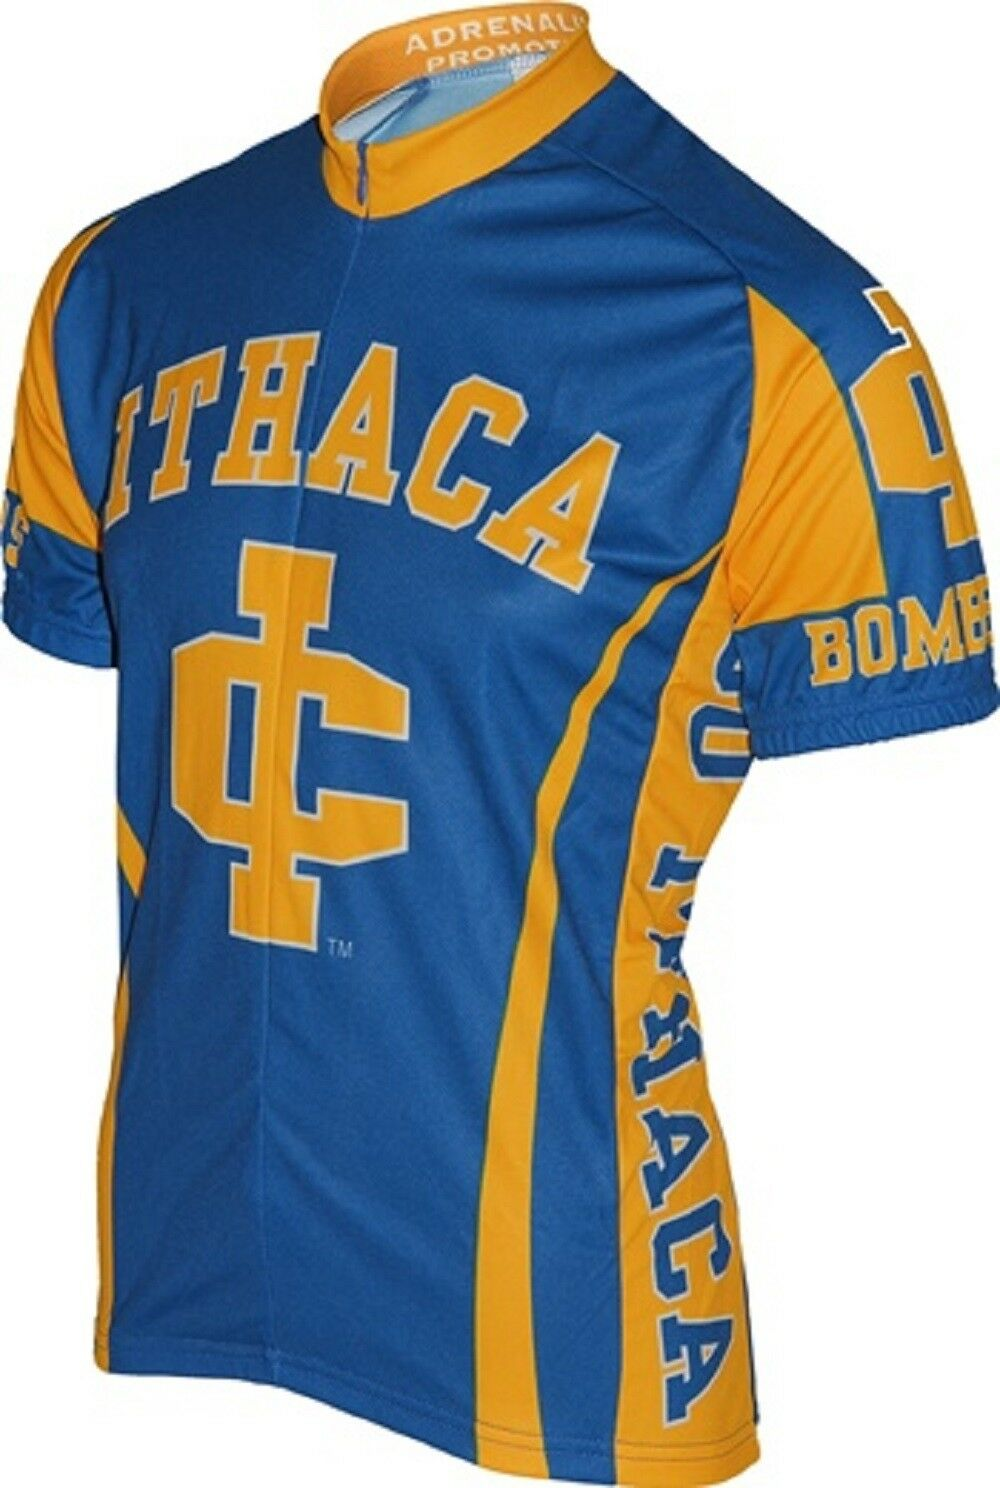 NCAA Men's Adrenaline Promotions Ithaca Bombers Road Cycling Jersey